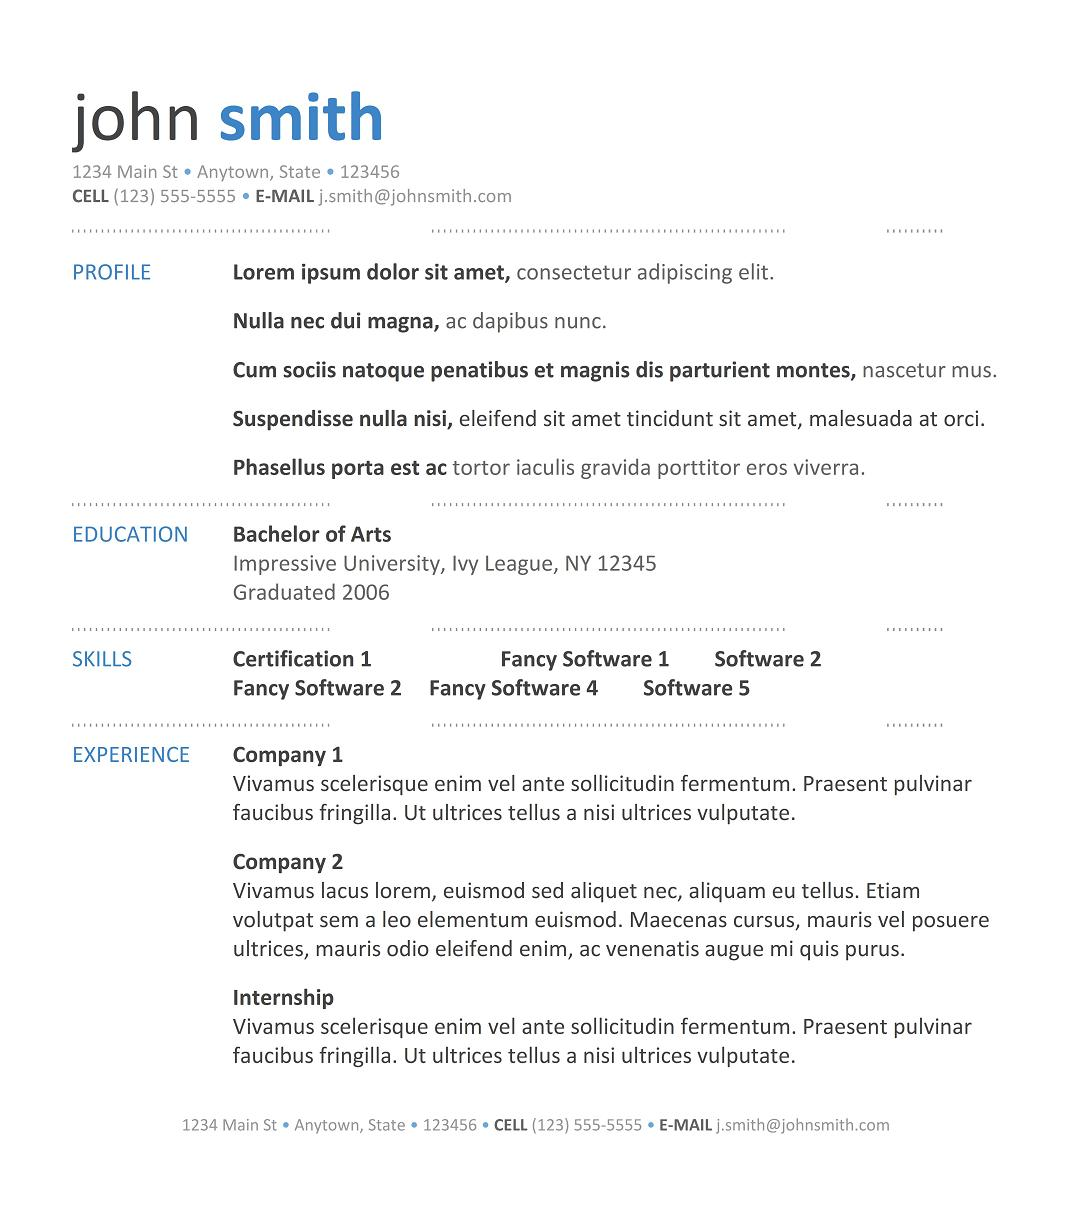 Free Sample Resume Templates Examples: 7 Simple Resume Templates Free Download